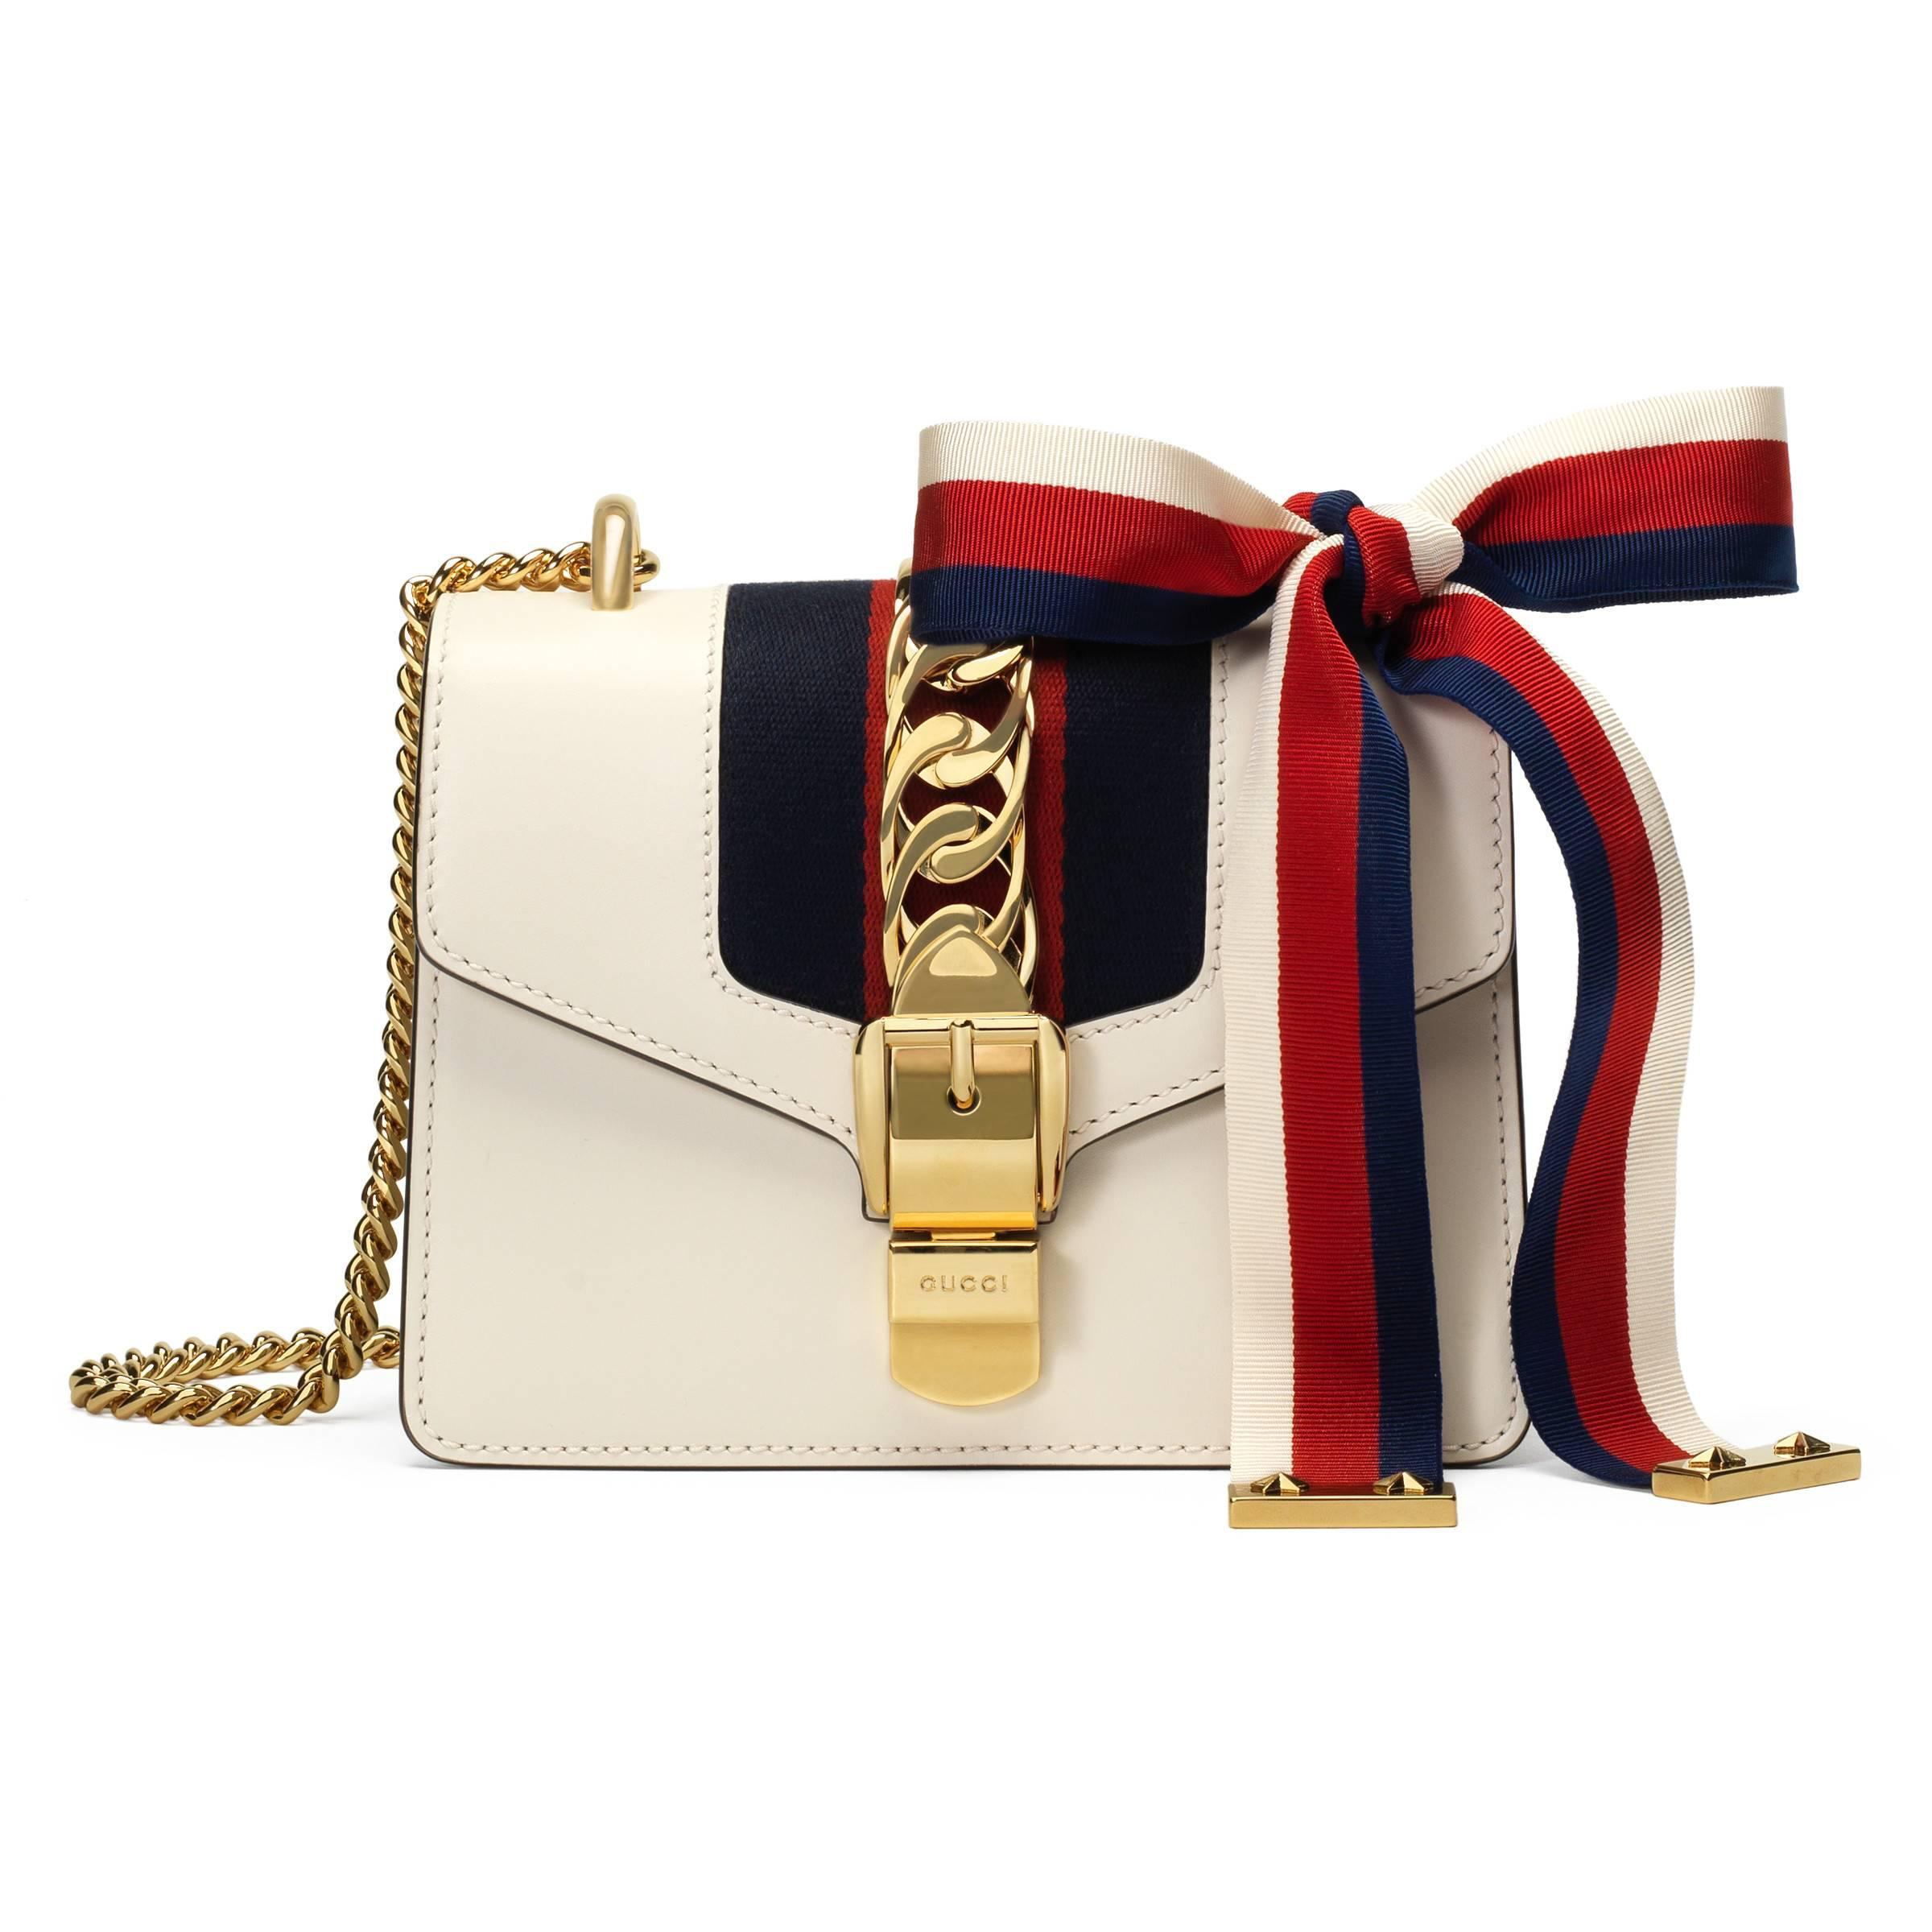 d8556b1d8d949a Gucci Sylvie Leather Mini Chain Bag in White - Save 6% - Lyst